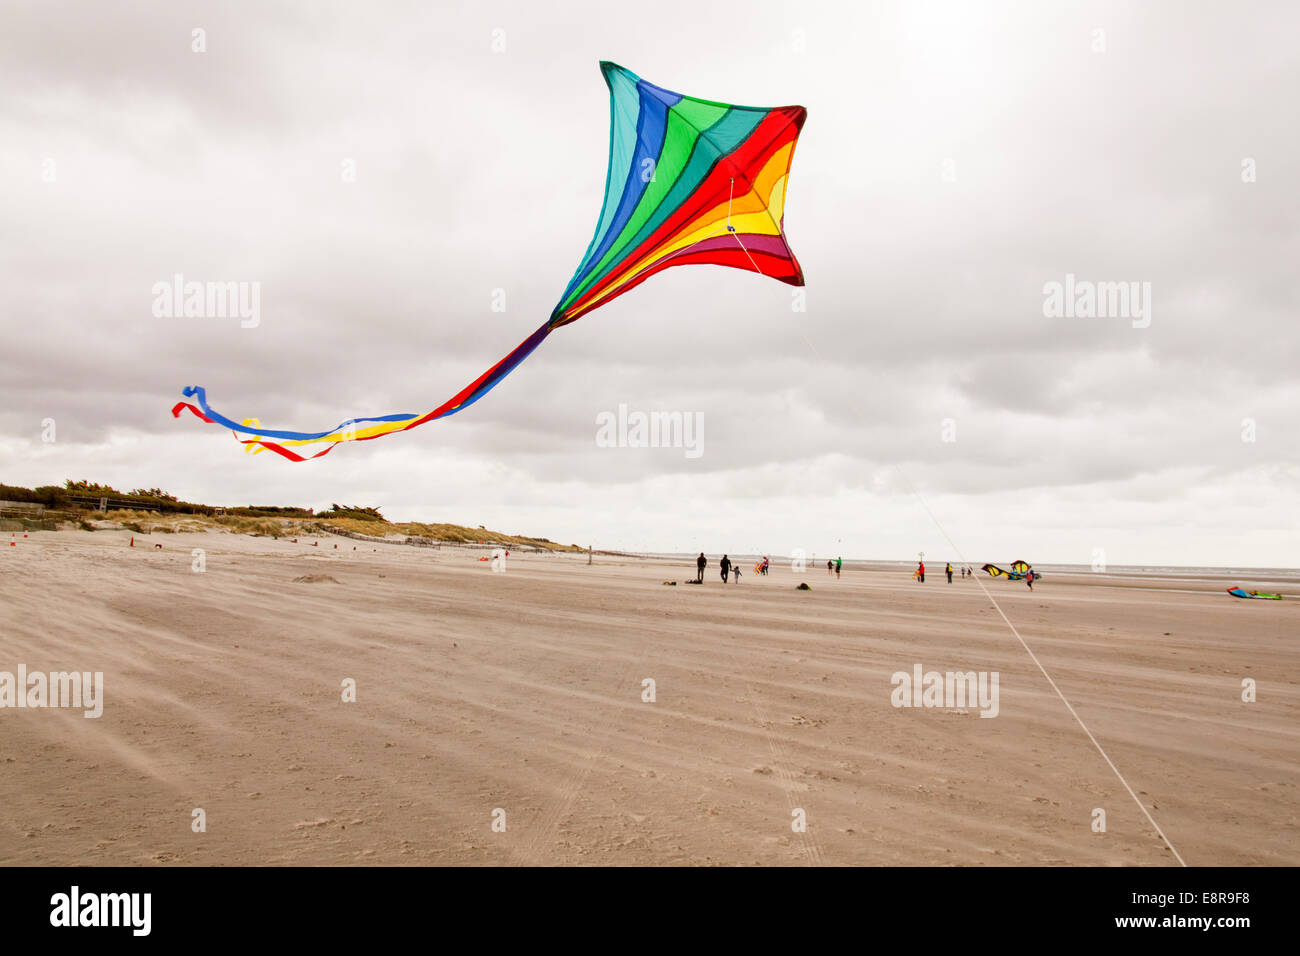 Kite flying on West Wittering beach, West Sussex, England, United Kingdom. - Stock Image